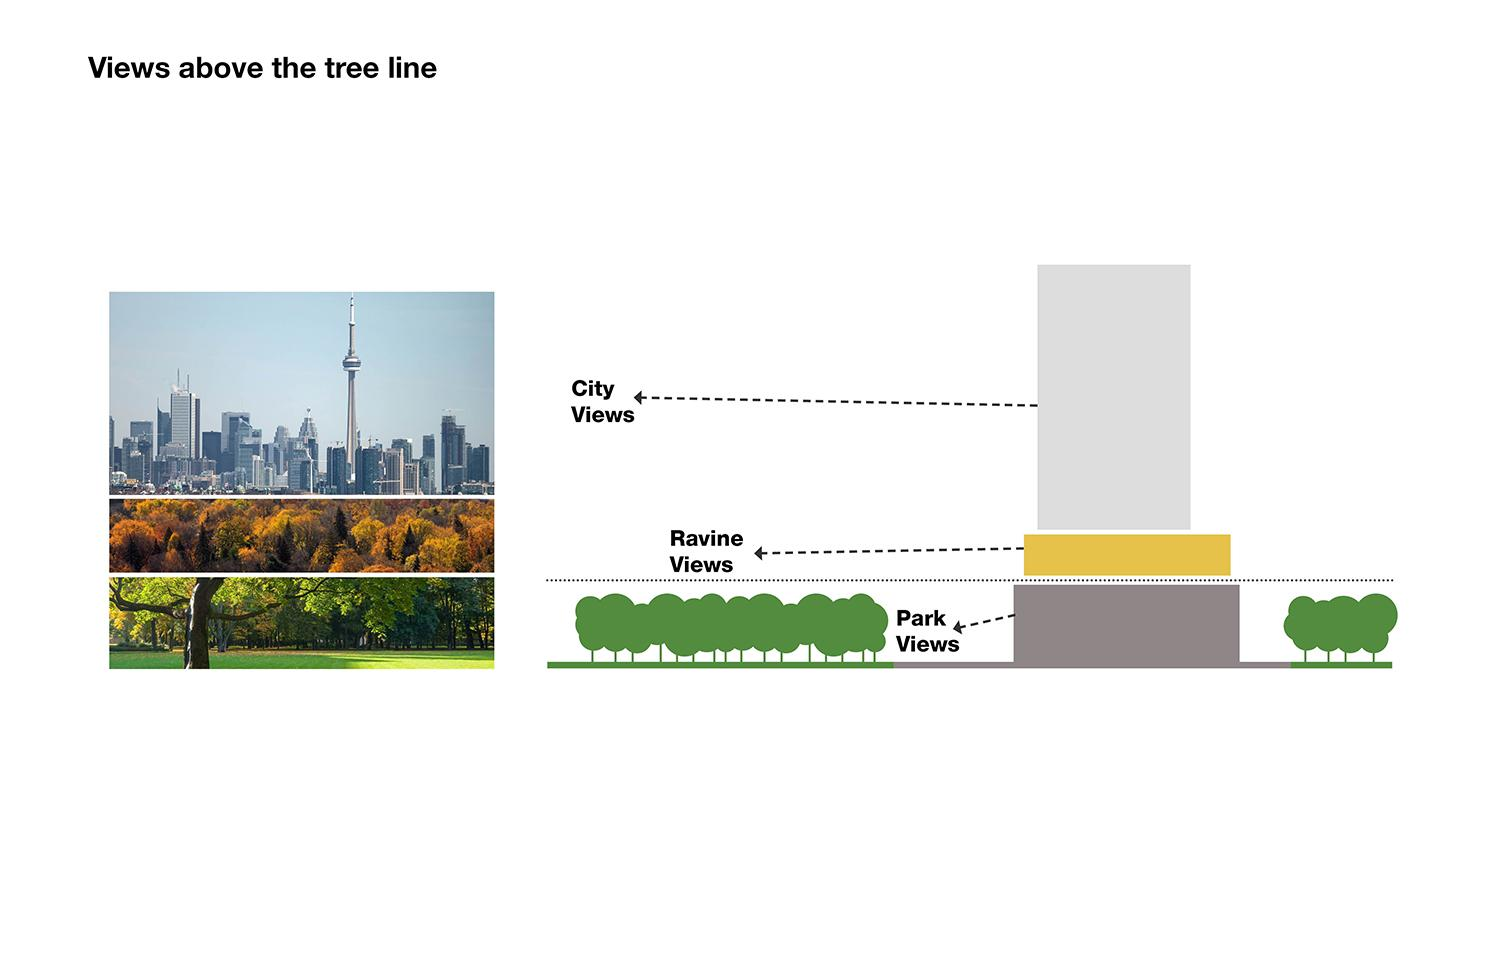 diagram of the views from above the tree line